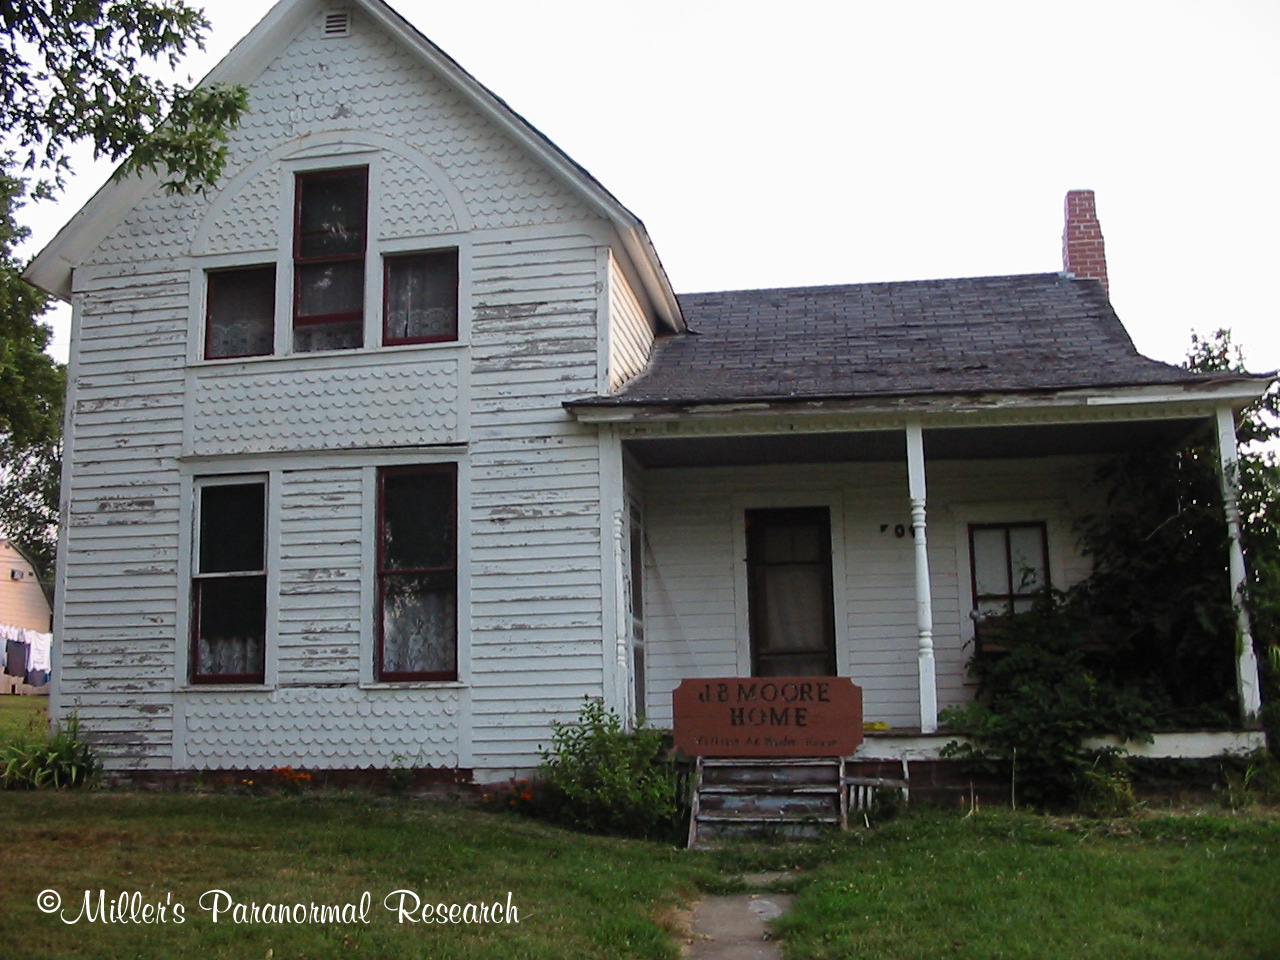 My visit to the Villisca Iowa Ax Murder.